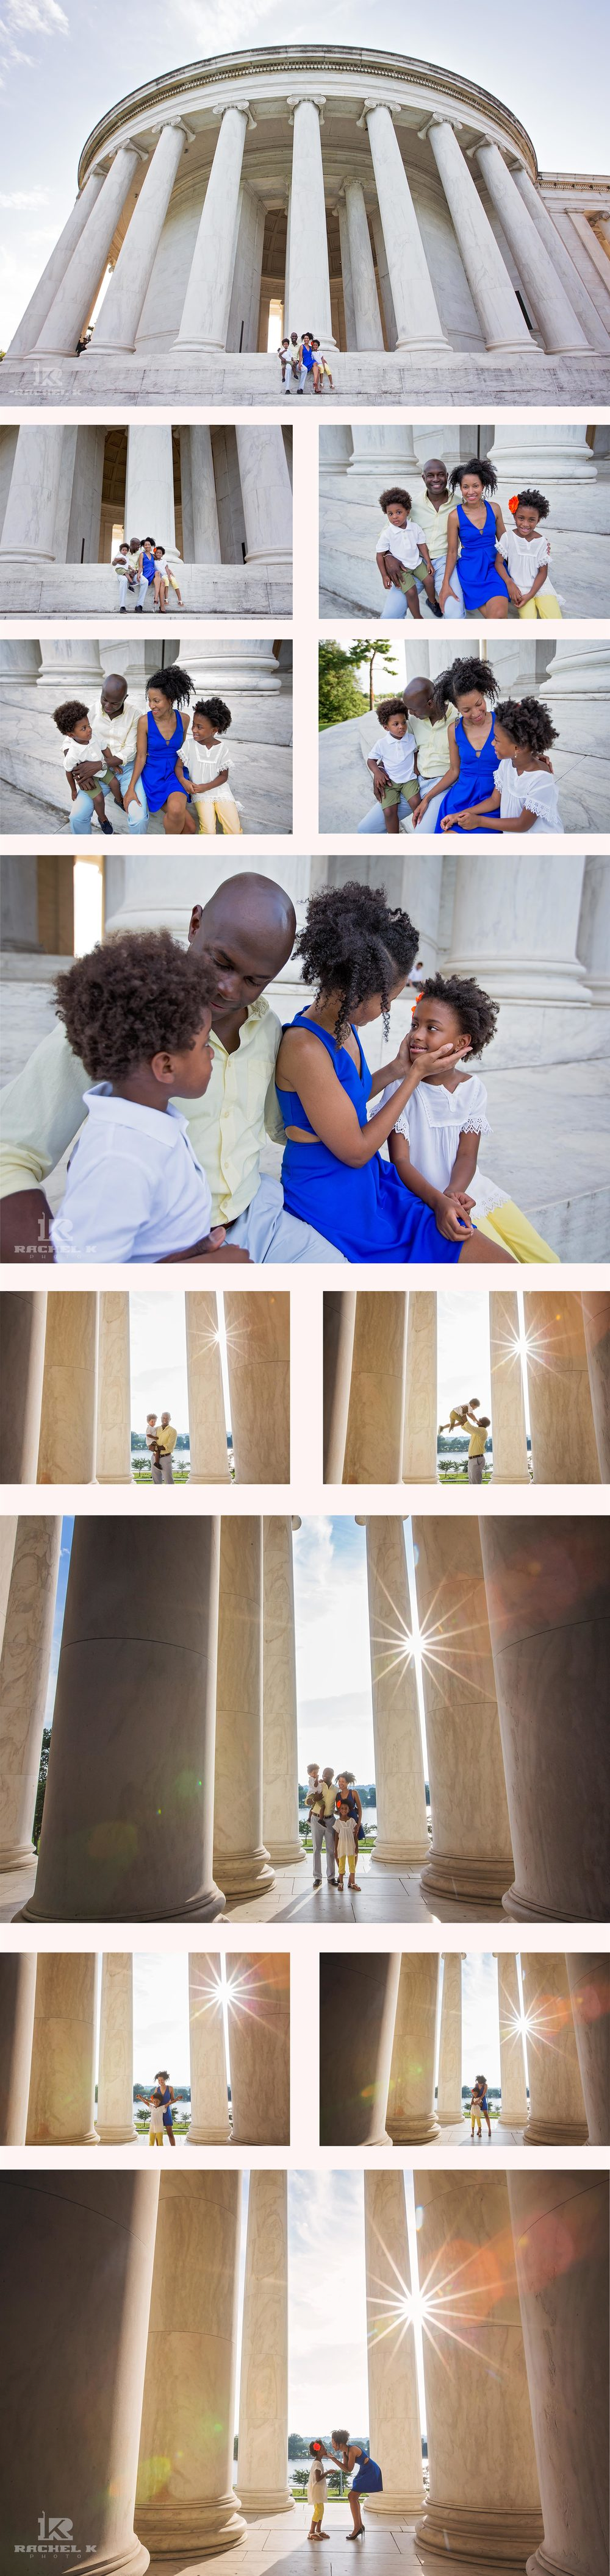 Jefferson memorial family photography session by Rachel K Photo